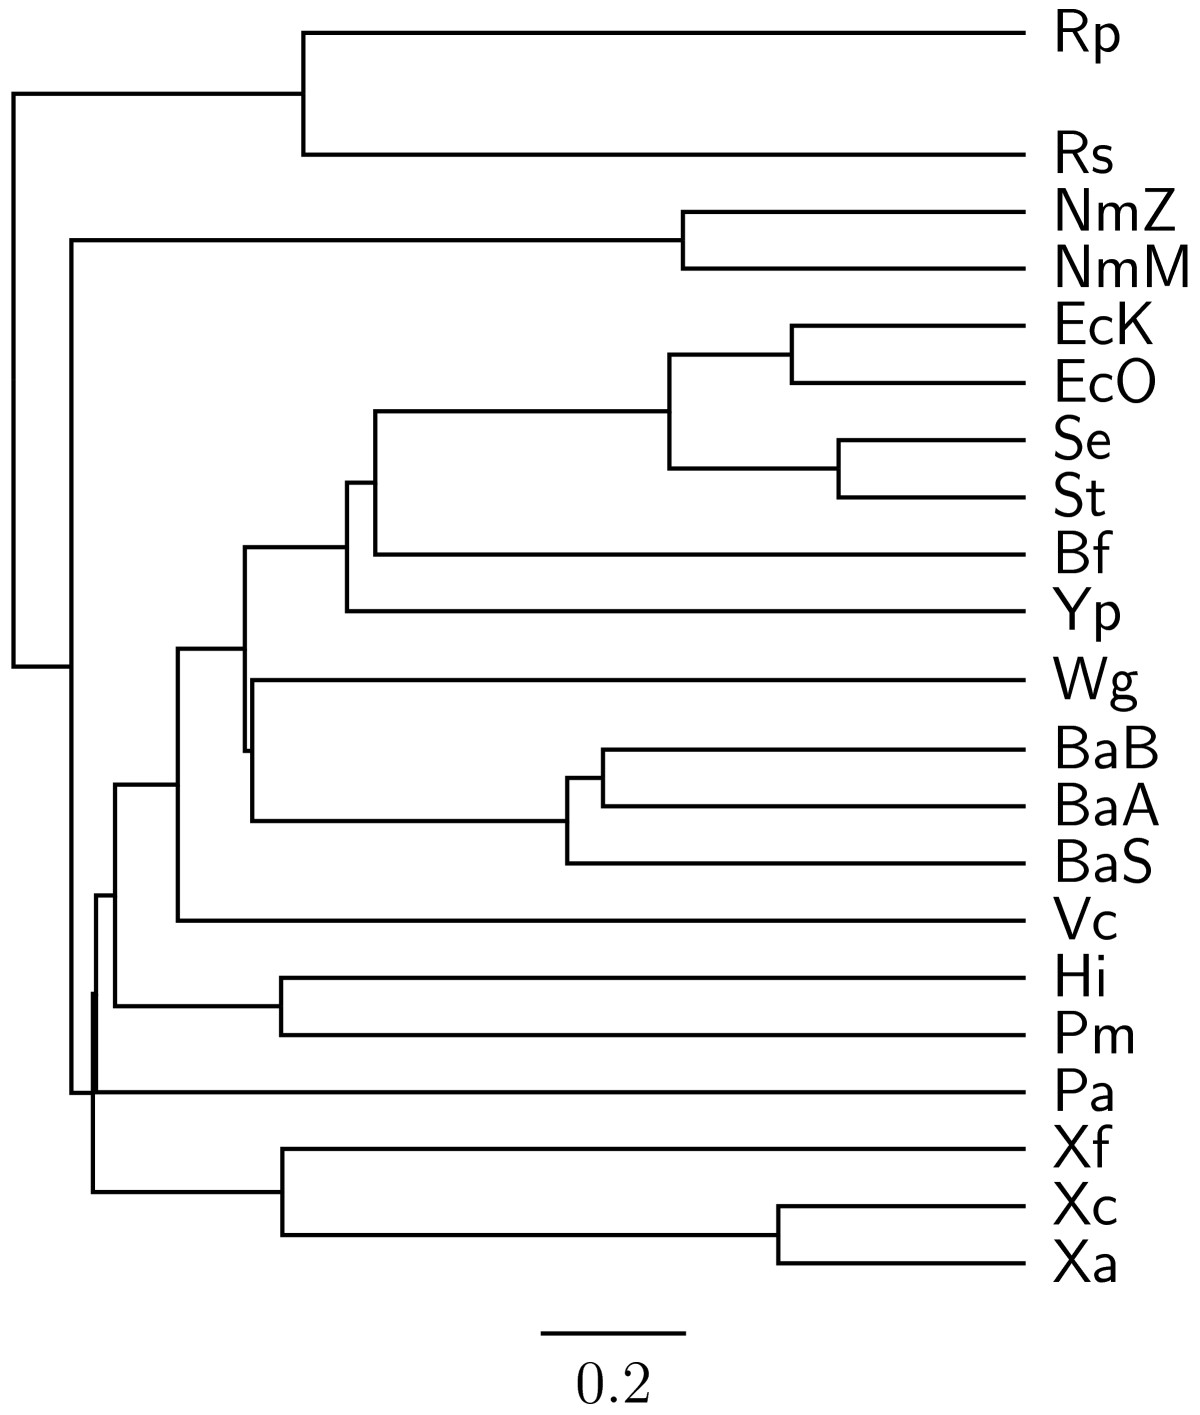 http://static-content.springer.com/image/art%3A10.1186%2F1471-2105-11-102/MediaObjects/12859_2009_Article_3559_Fig4_HTML.jpg